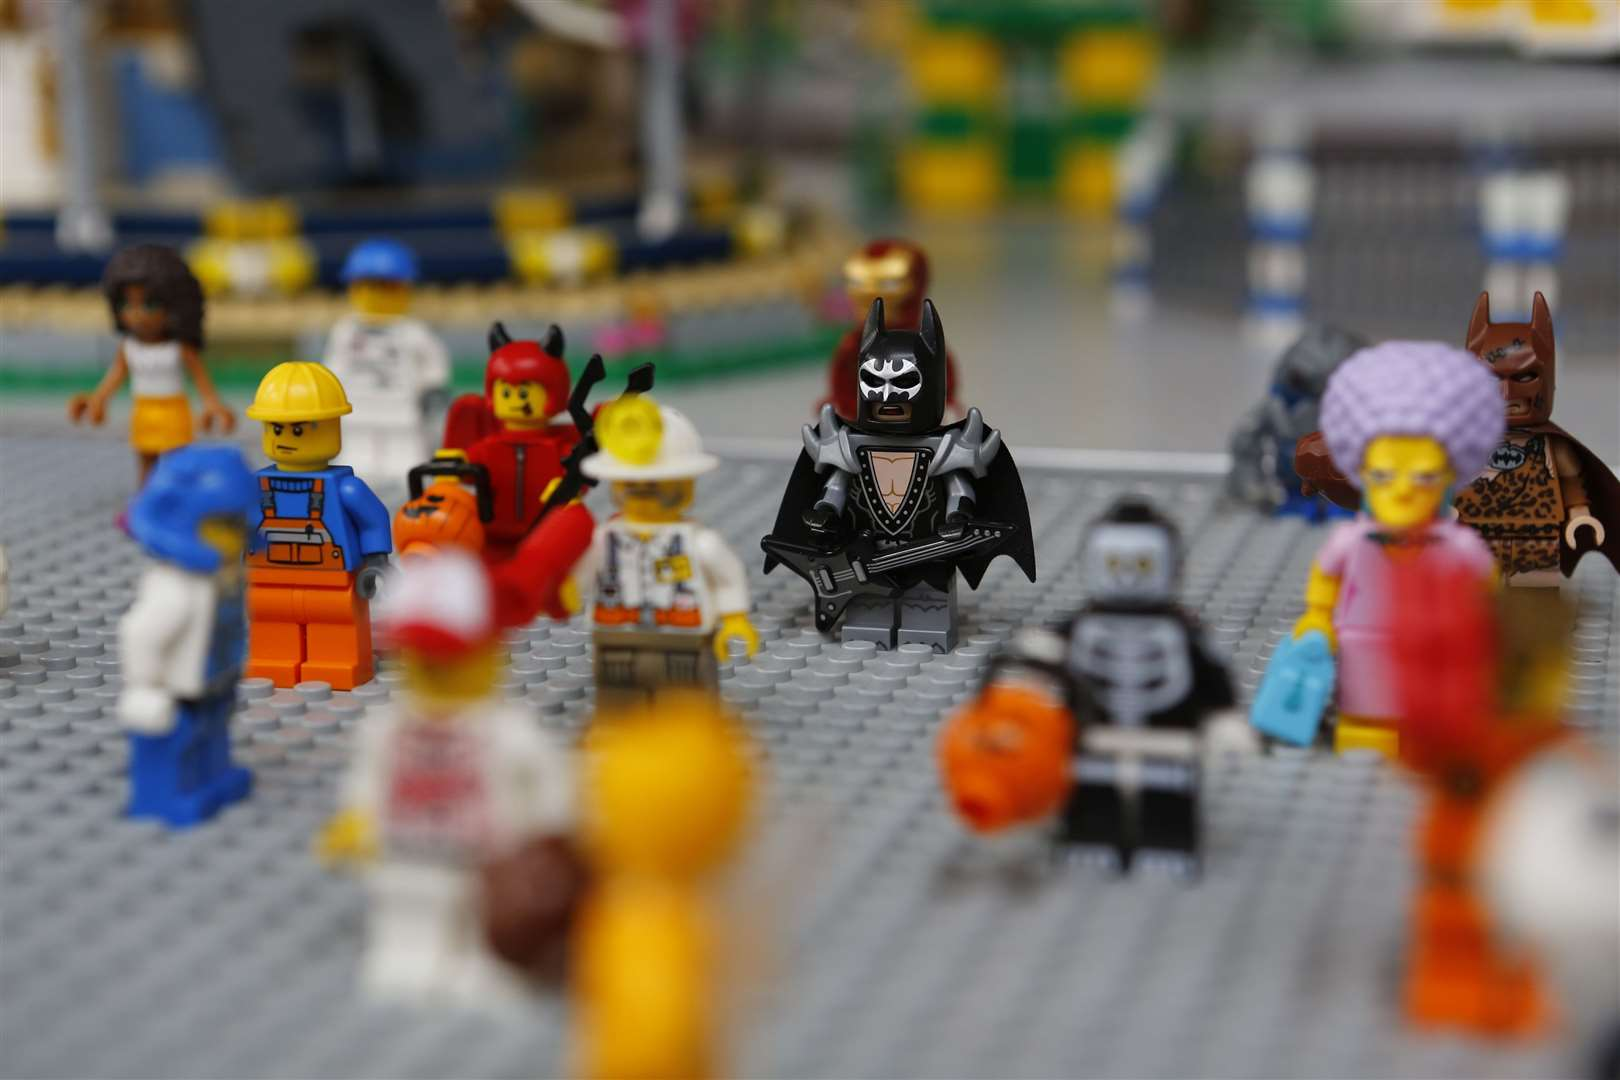 Set the kids a LEGO challenge - there's lots online to choose from